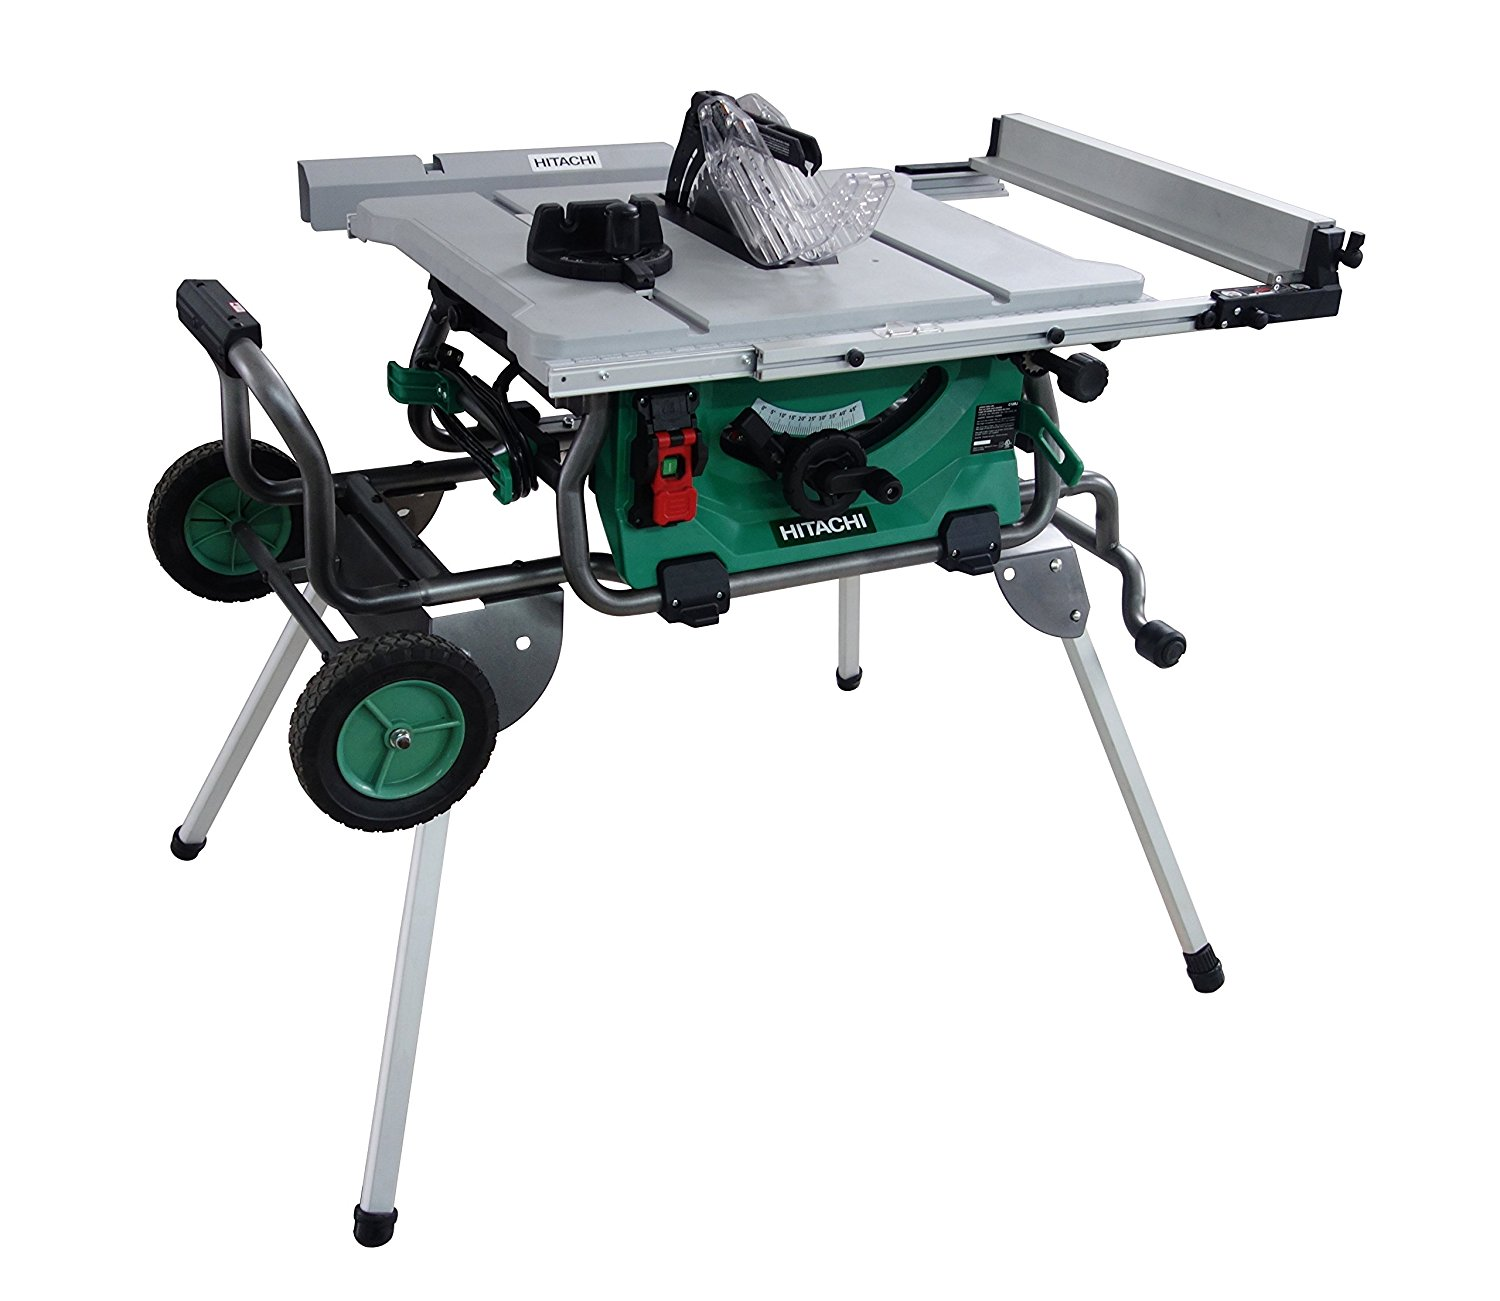 Hitachi c10rj 10 15 amp table saw with 35 rip capacity and fold a new hitachi 10 inch 15 amp table saw is coming out soon model c10rj keyboard keysfo Choice Image